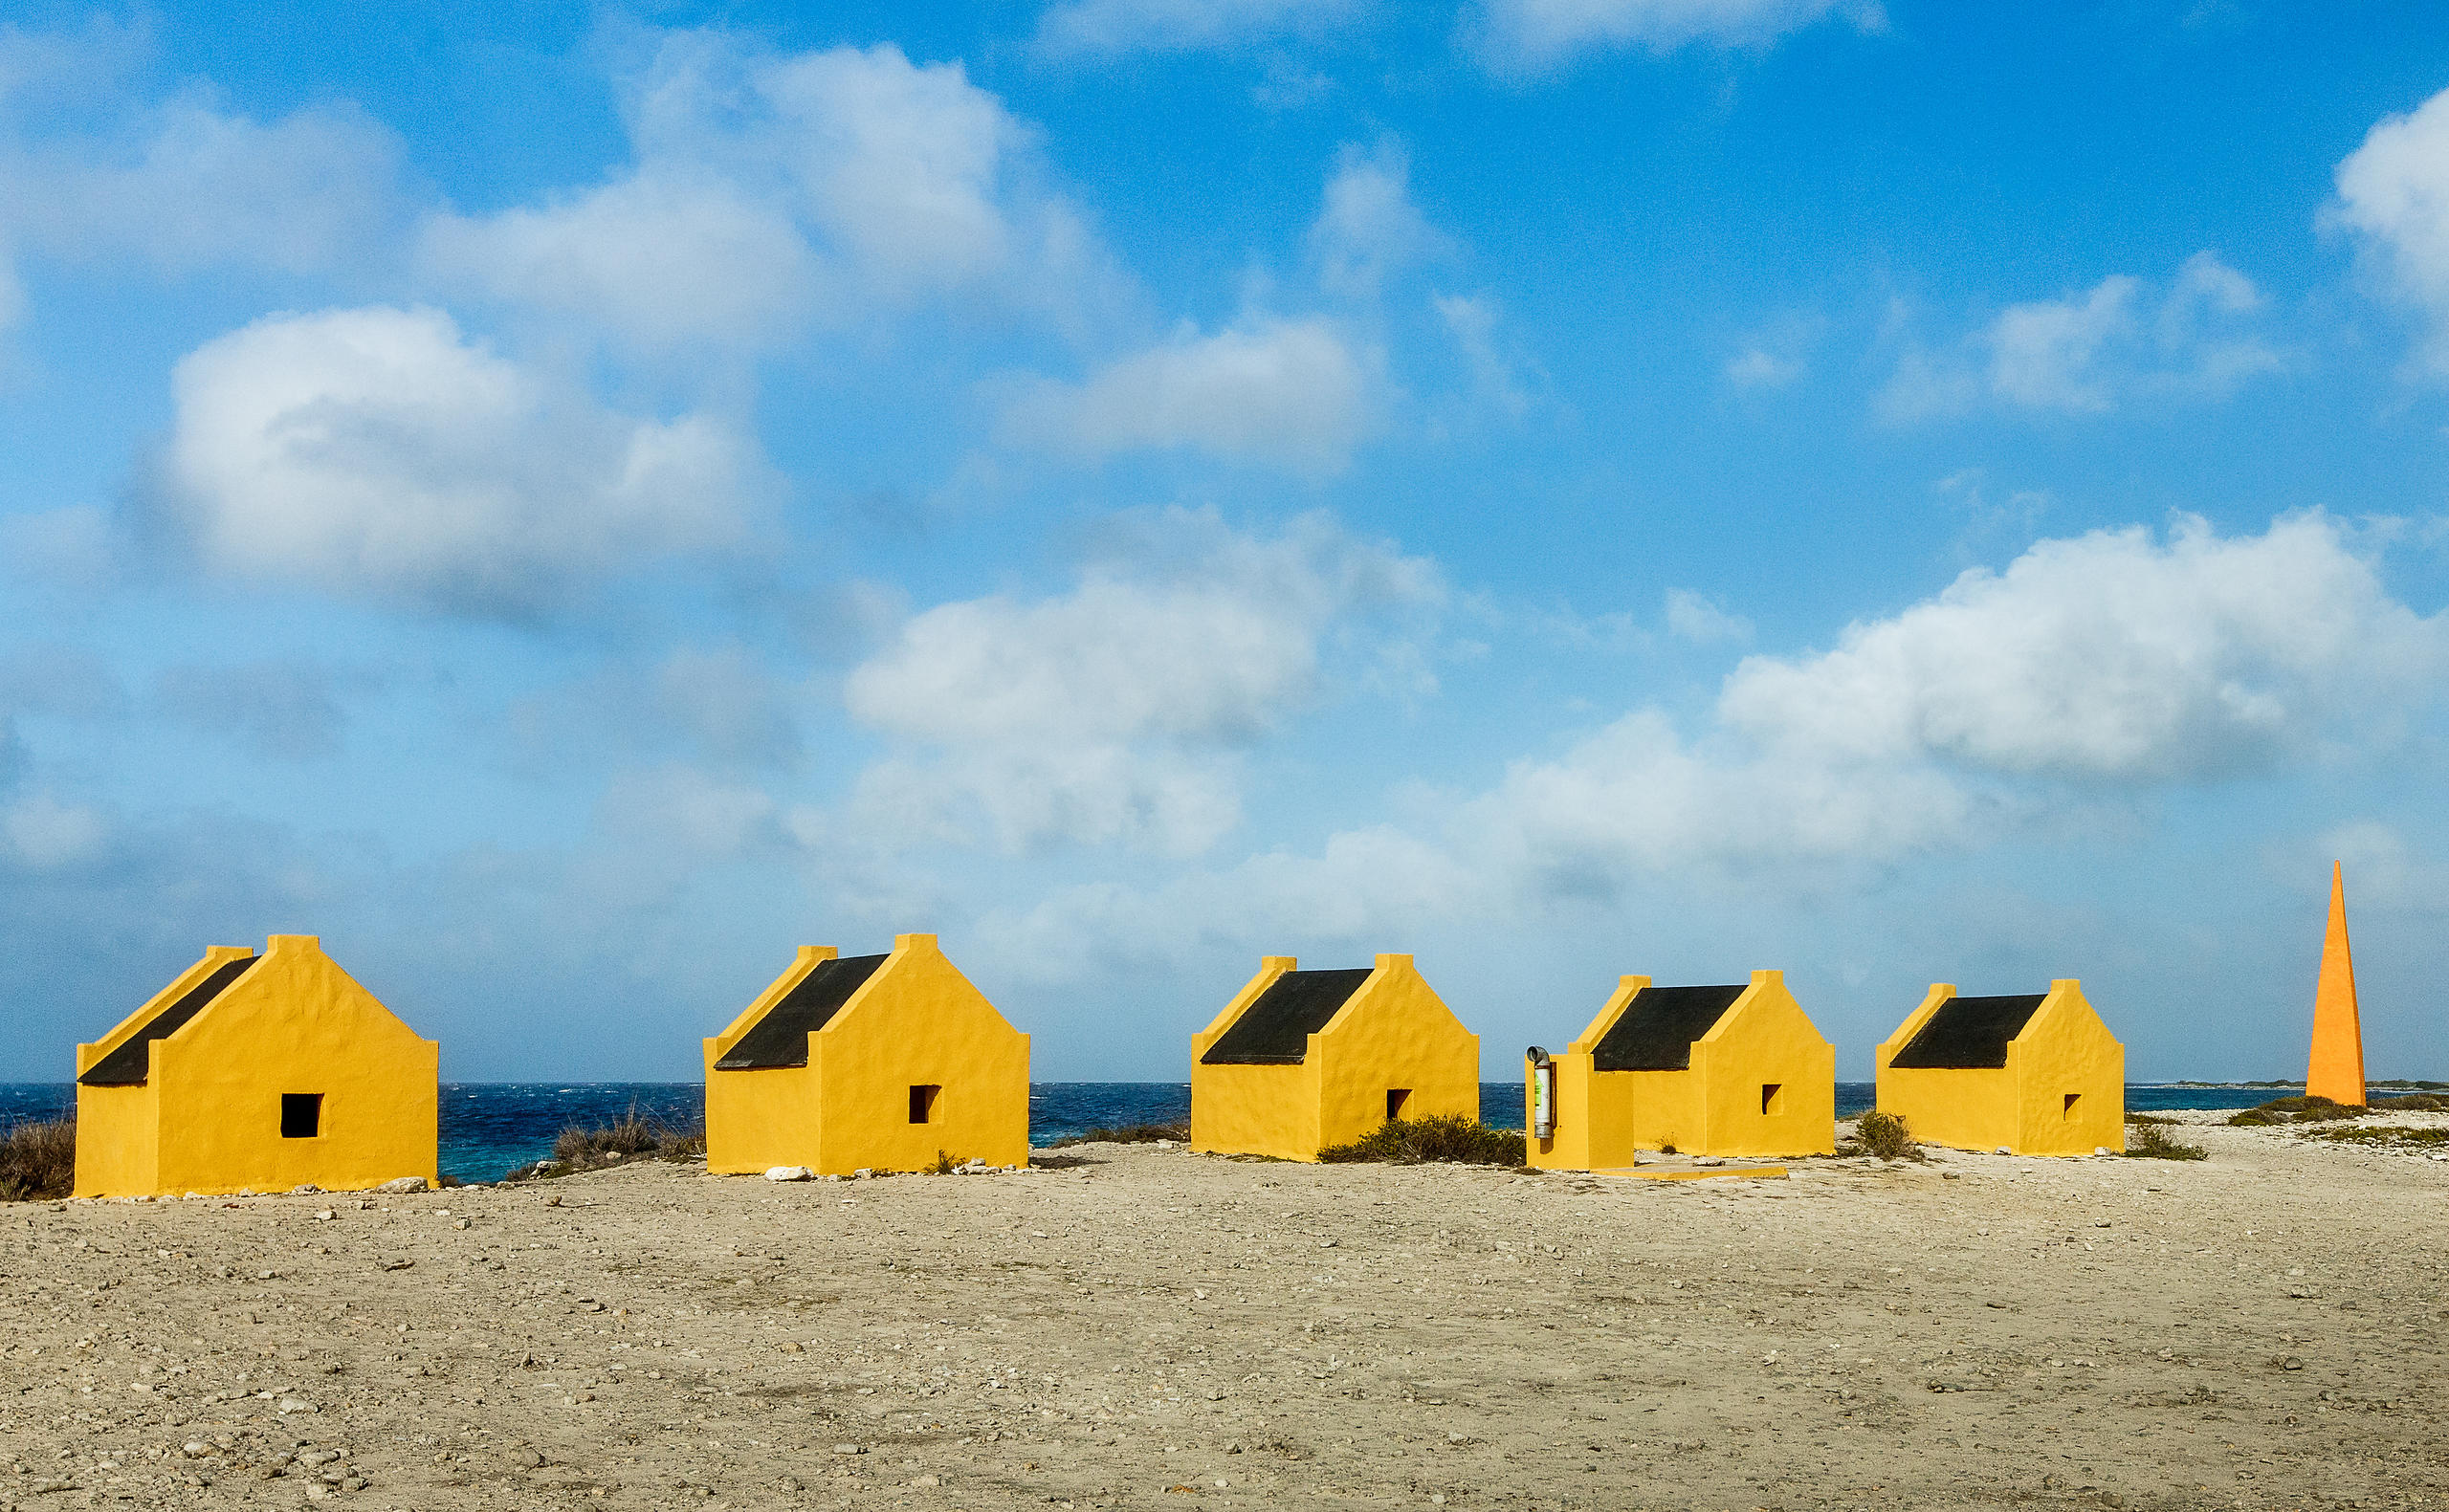 Yellow slave huts against blue sky in Bonaire